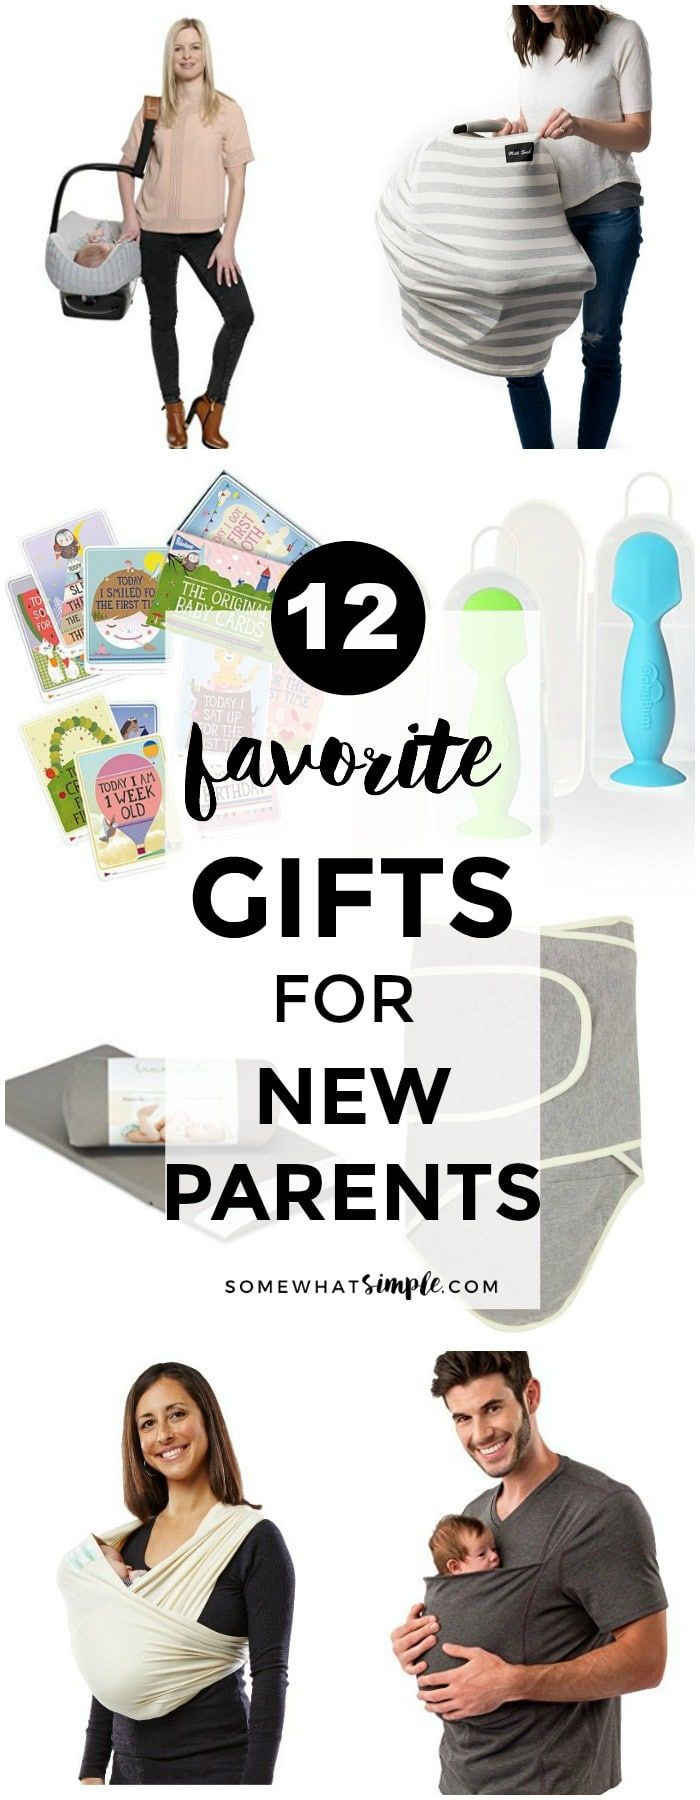 Best ideas about Gift Ideas For Someone Who Just Had A Baby . Save or Pin Best 25 Gifts for expecting parents ideas on Pinterest Now.